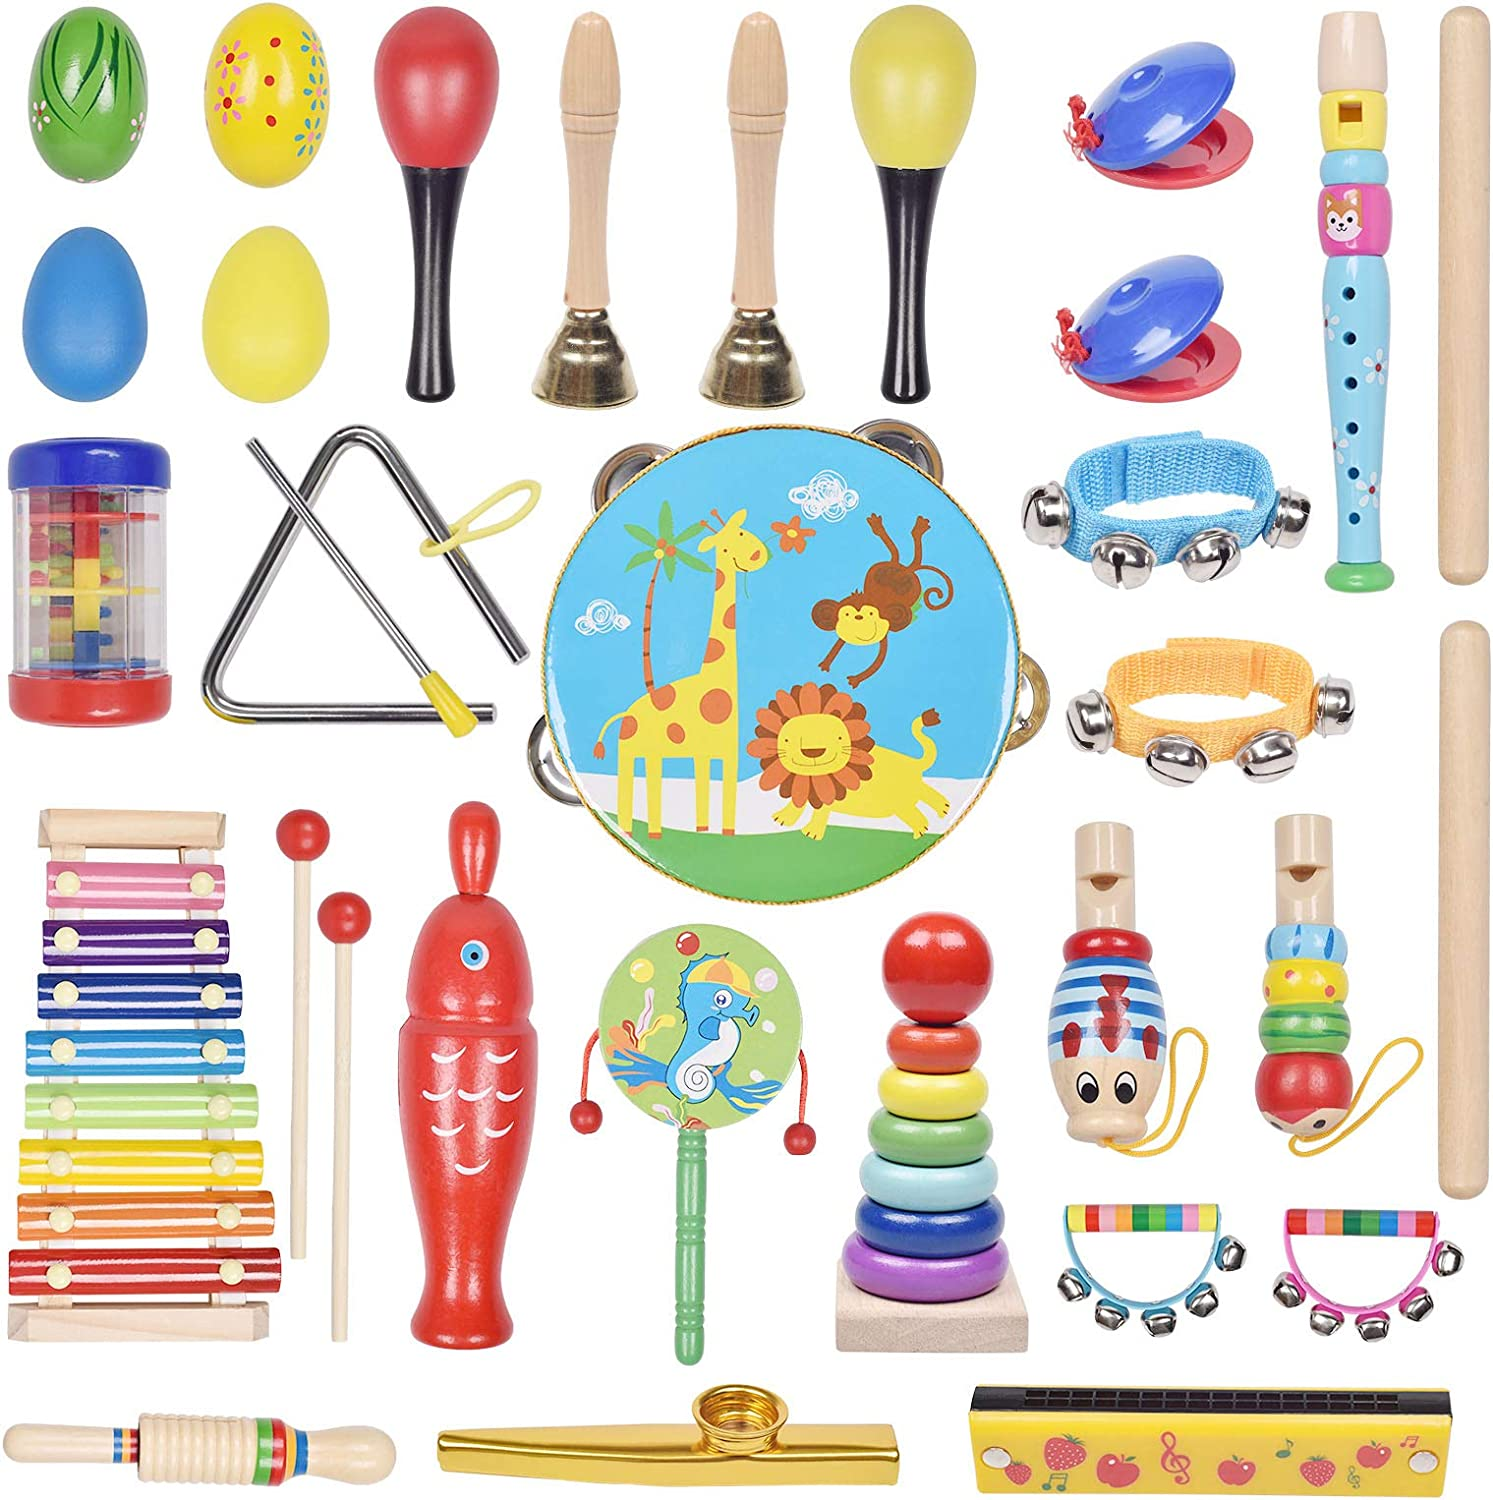 Musical Instrument Toys Set for Kids, 35-PCS Musical Toys for Toddlers Preschool Educational, with Storage Bag for Children, Tambourine, Music Bell & More: Toys & Games